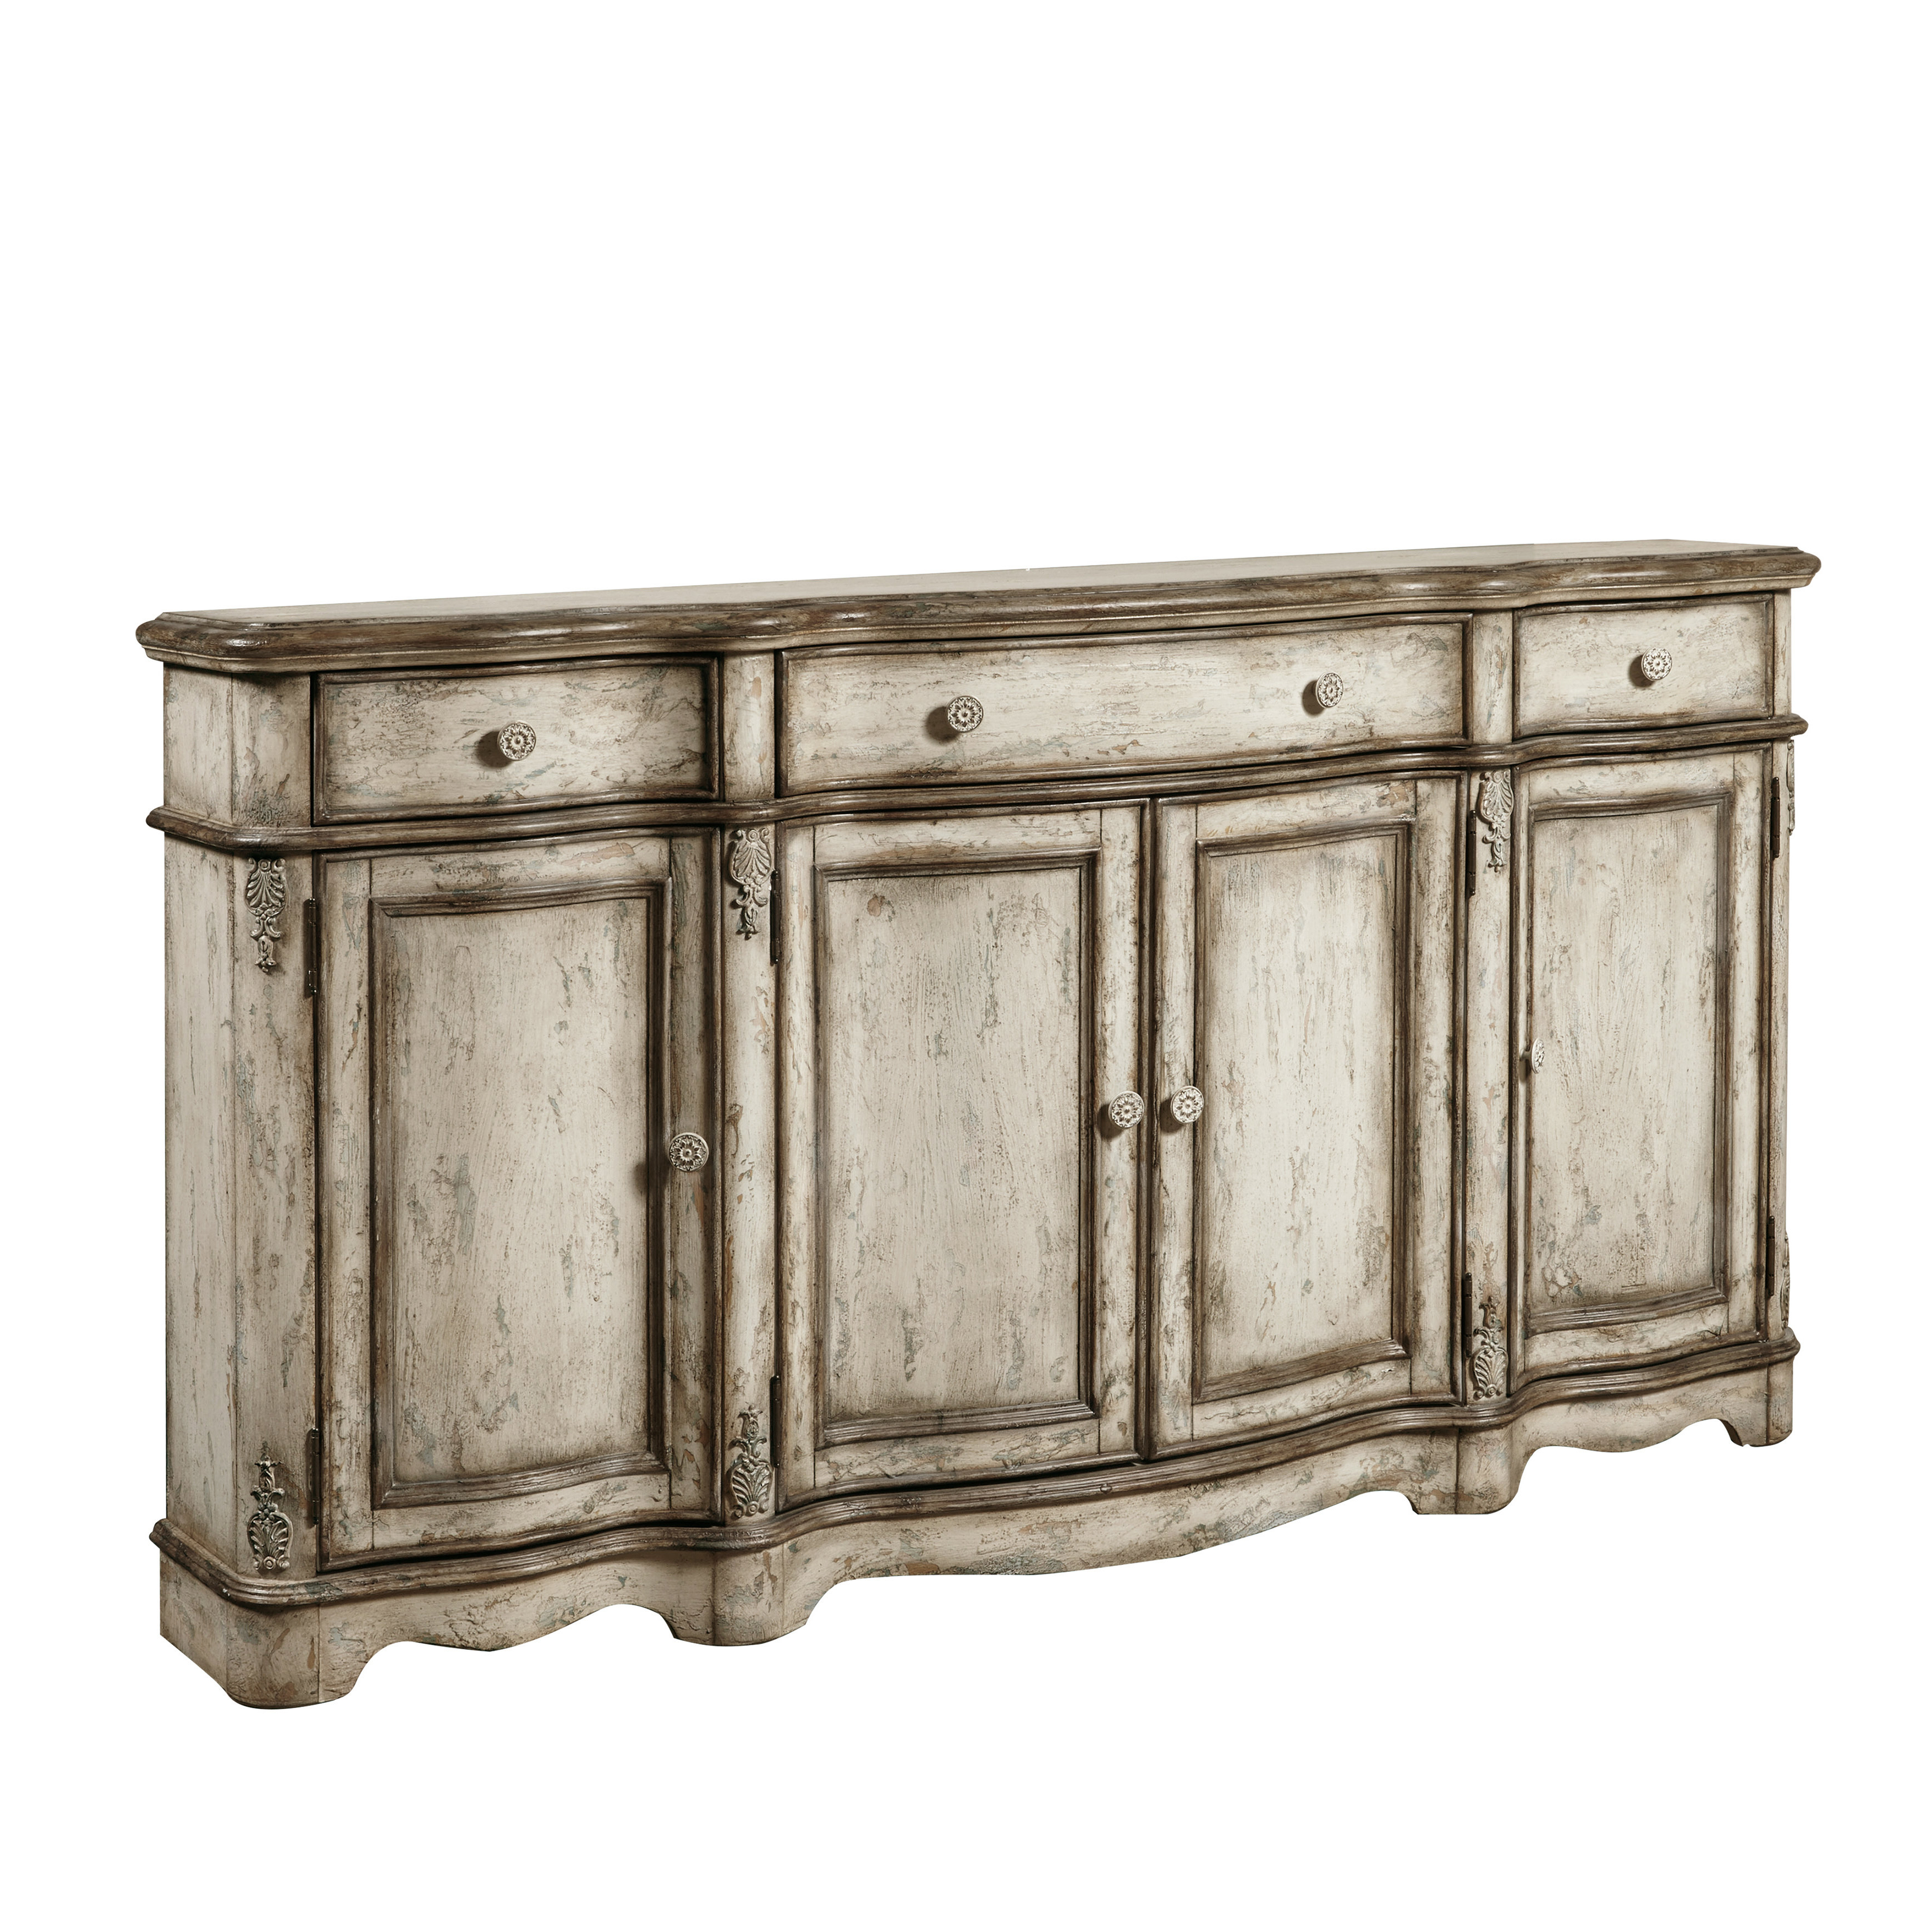 Farmhouse & Rustic Sideboards & Buffets | Birch Lane Throughout Velazco Sideboards (View 5 of 20)